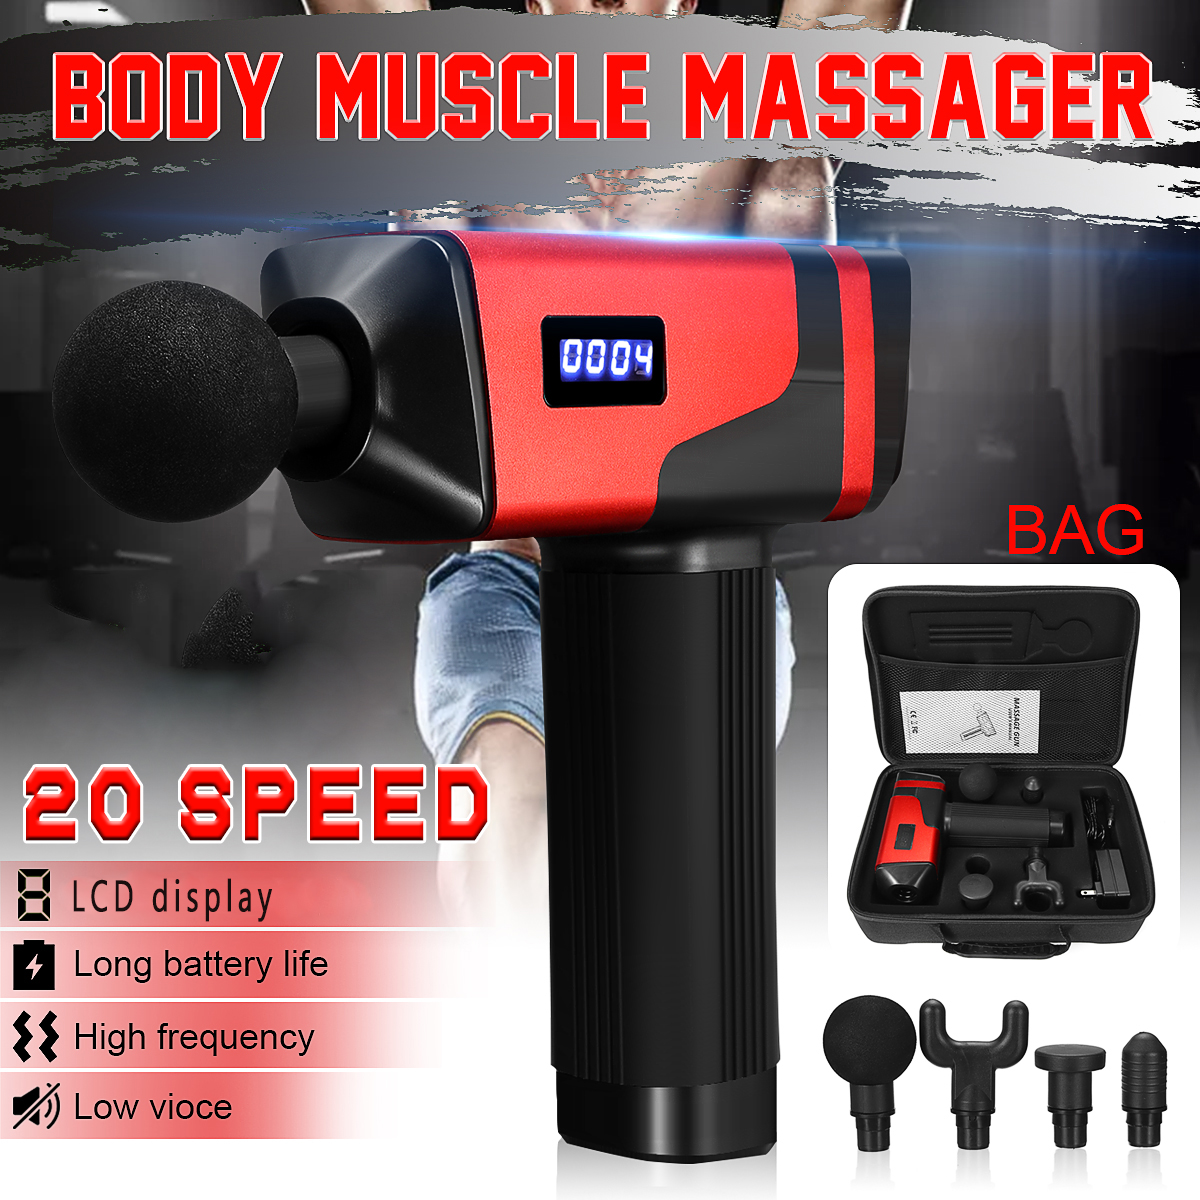 20-speed 110-240V Body Muscle Massager Outdoor Sports Fitness Fatigue Relief Electric Massager with 4 Massager Heads